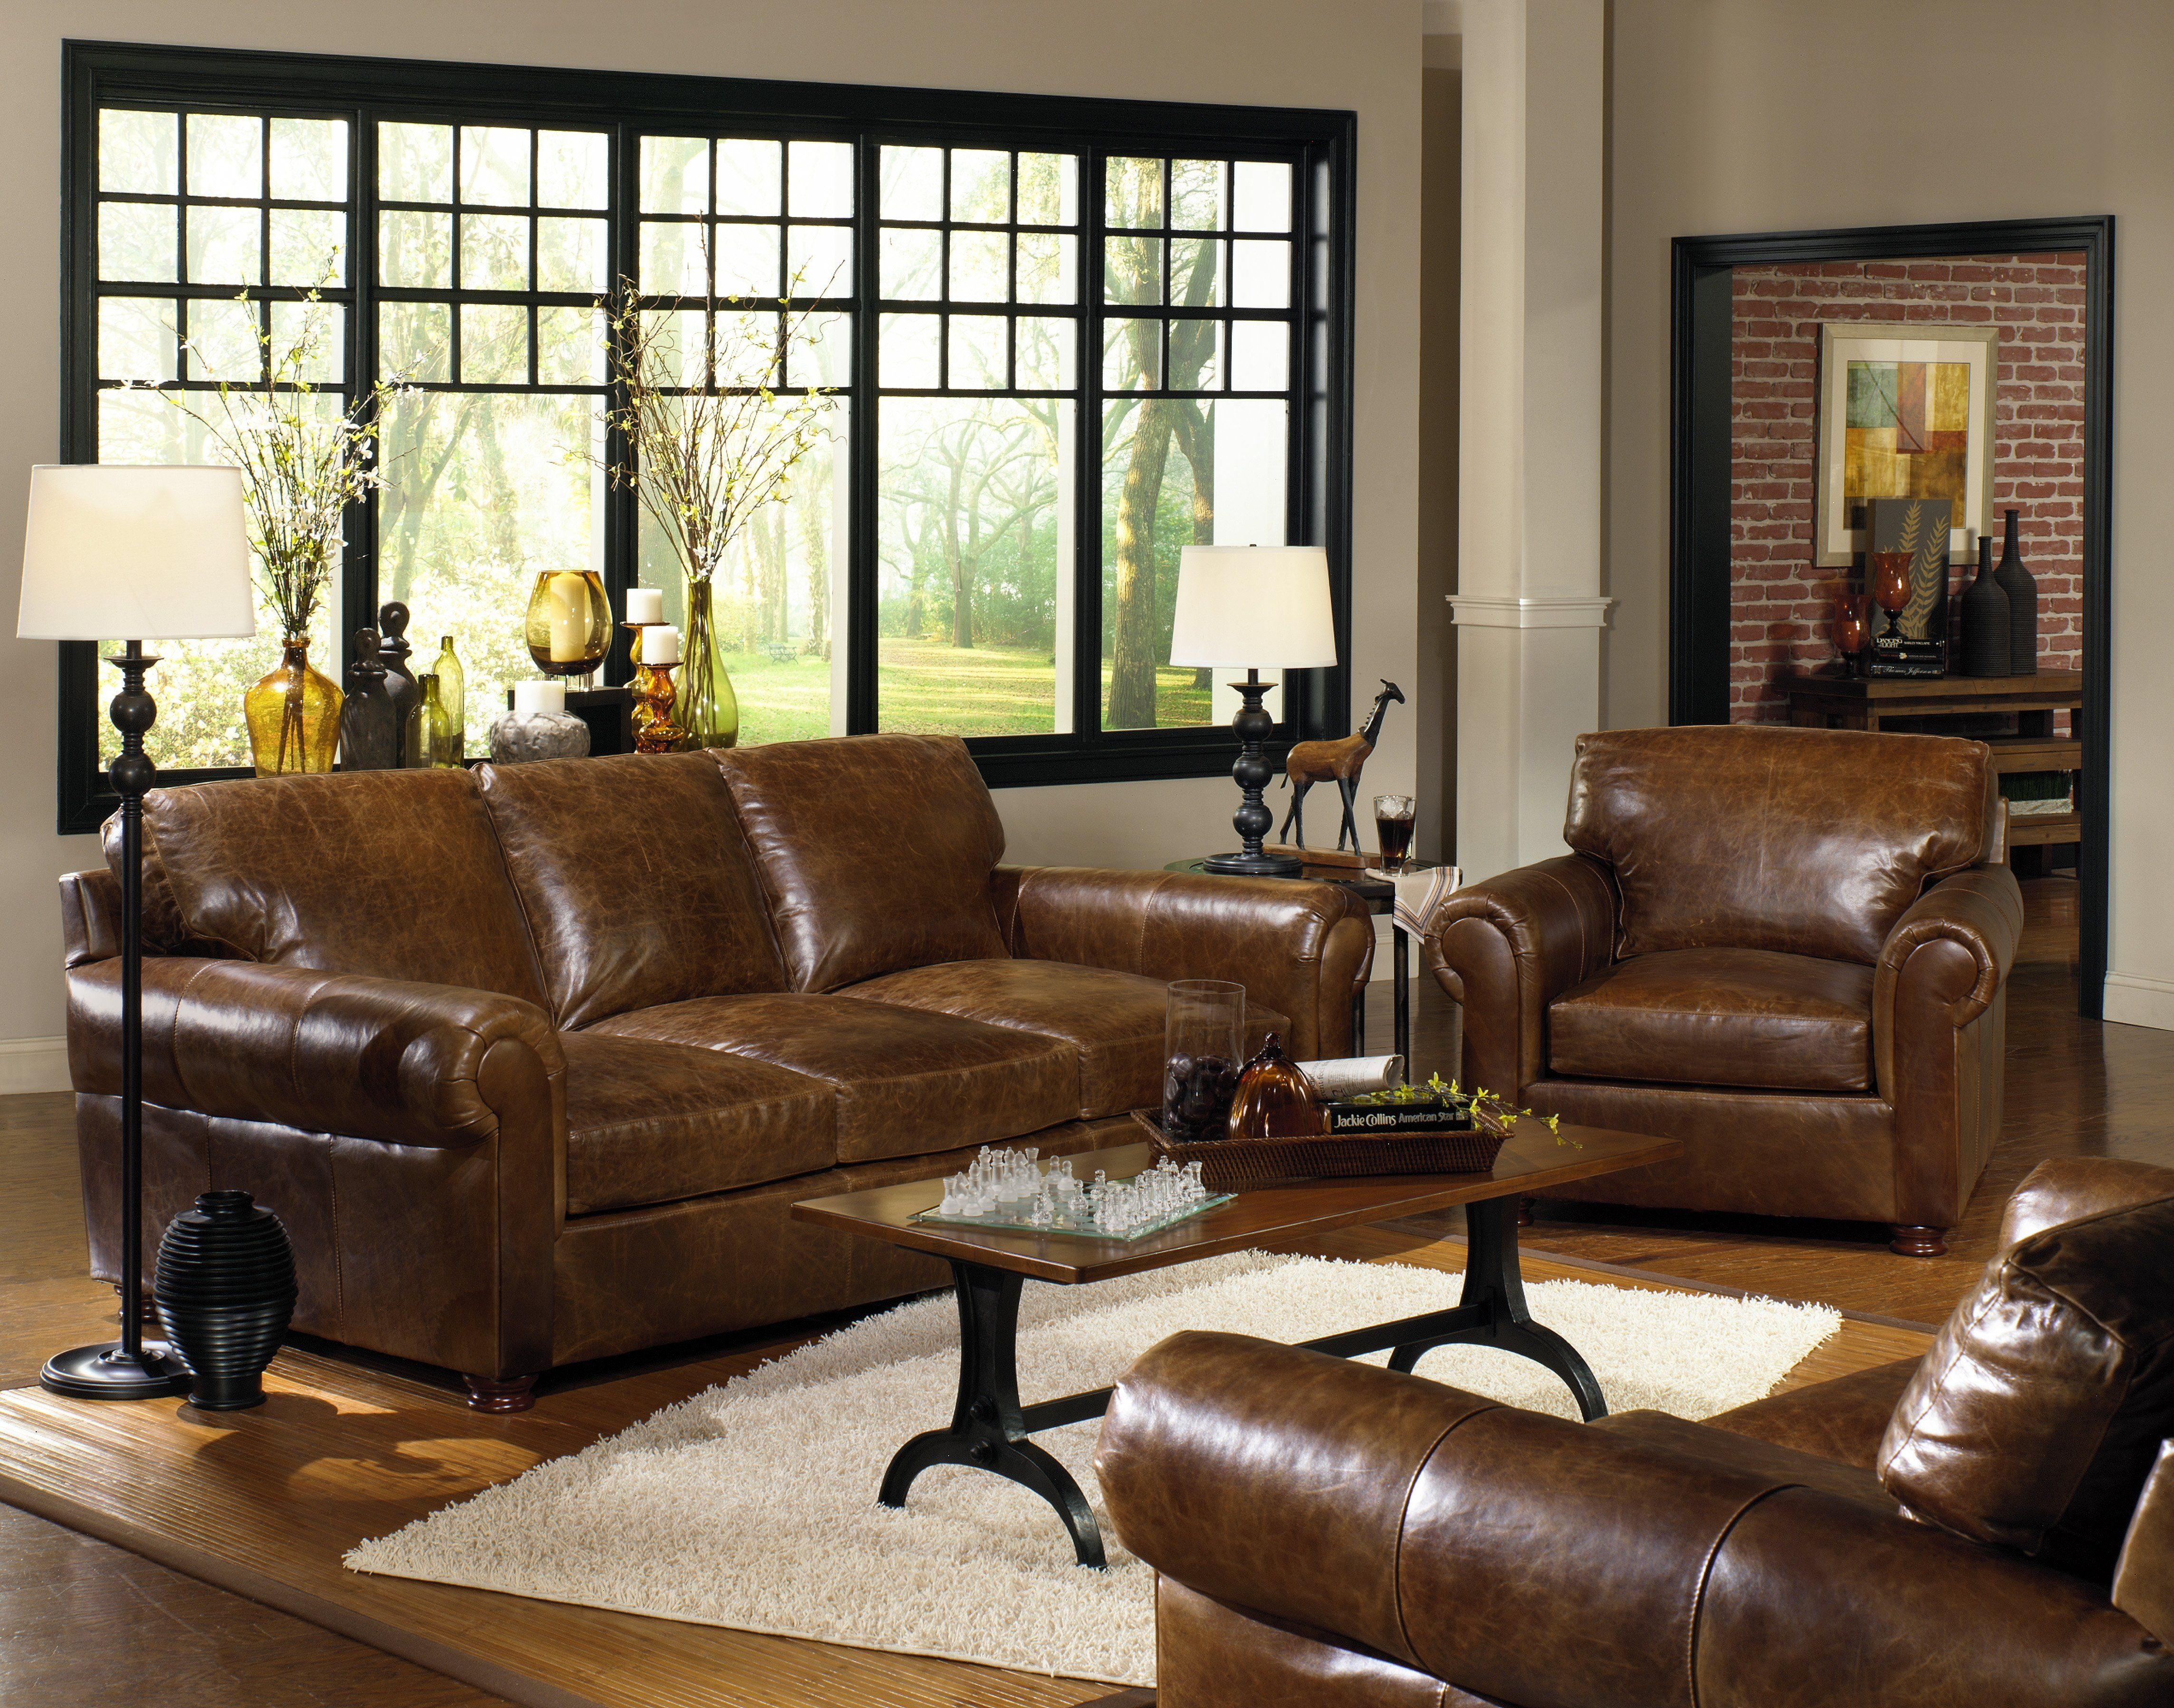 Remarkable Gorgeous Usa Premium Leather Couches And Chairs In Liberty Ocoug Best Dining Table And Chair Ideas Images Ocougorg